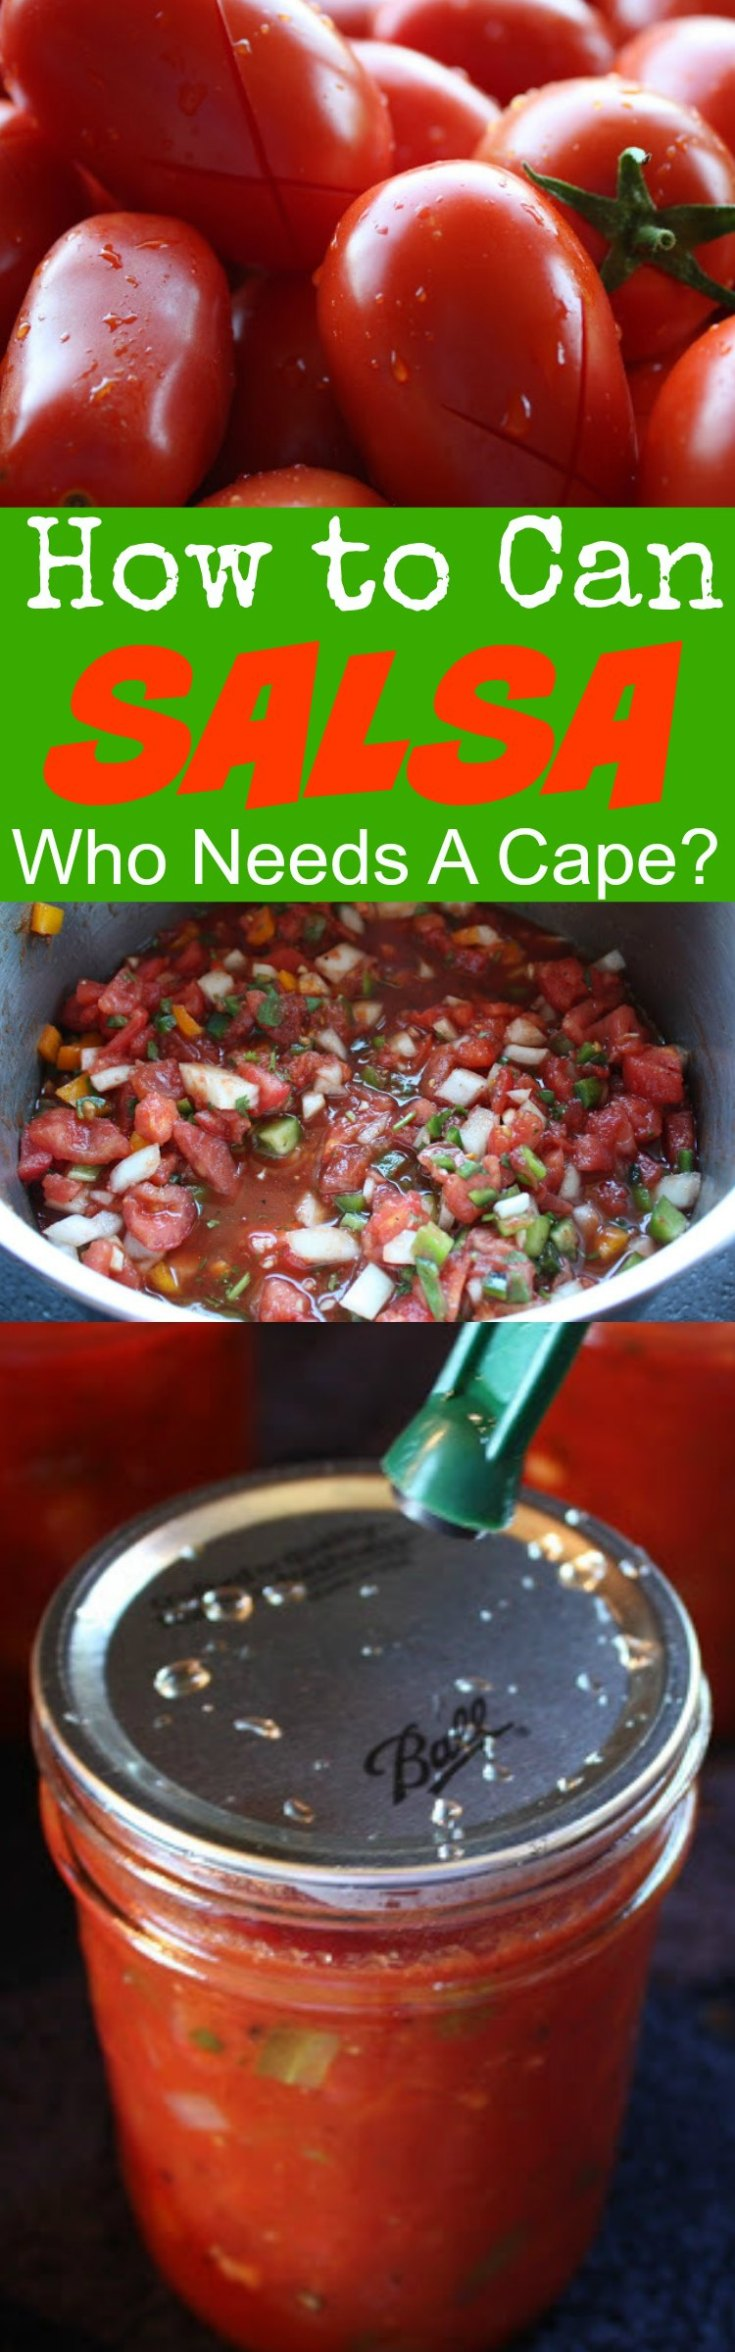 How to Can Salsa, a Tutorial is just for you if you've ever wanted to make your own canned salsa, here's how. Step by step photos of the process.